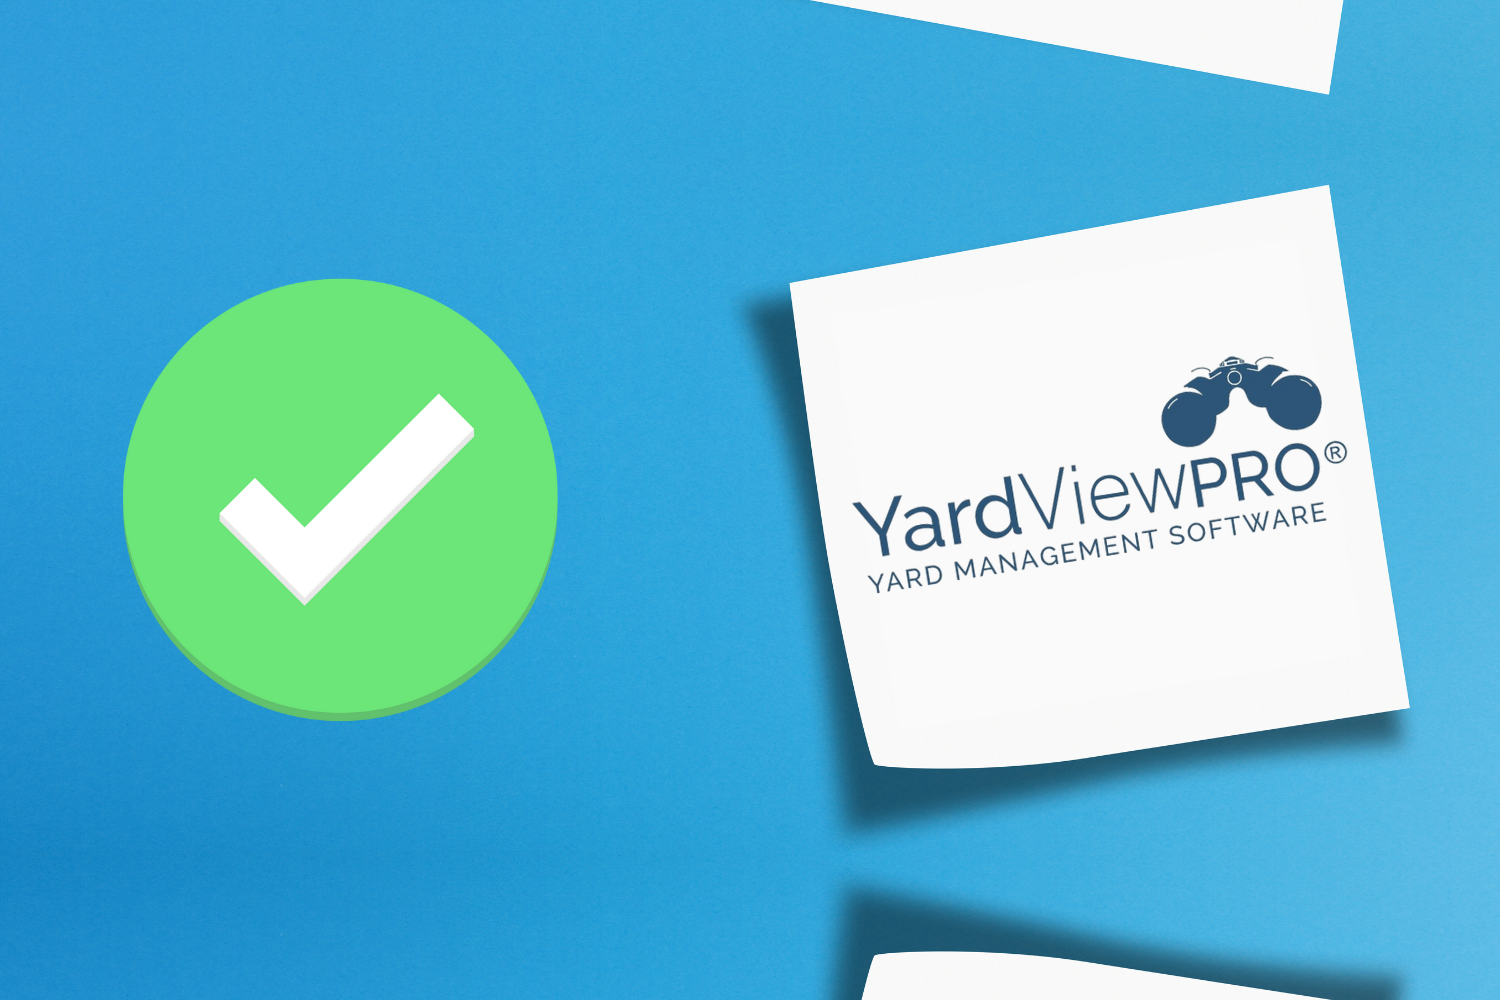 Yard management software solution provided by YardView gets a check for quick installation and easy implementation